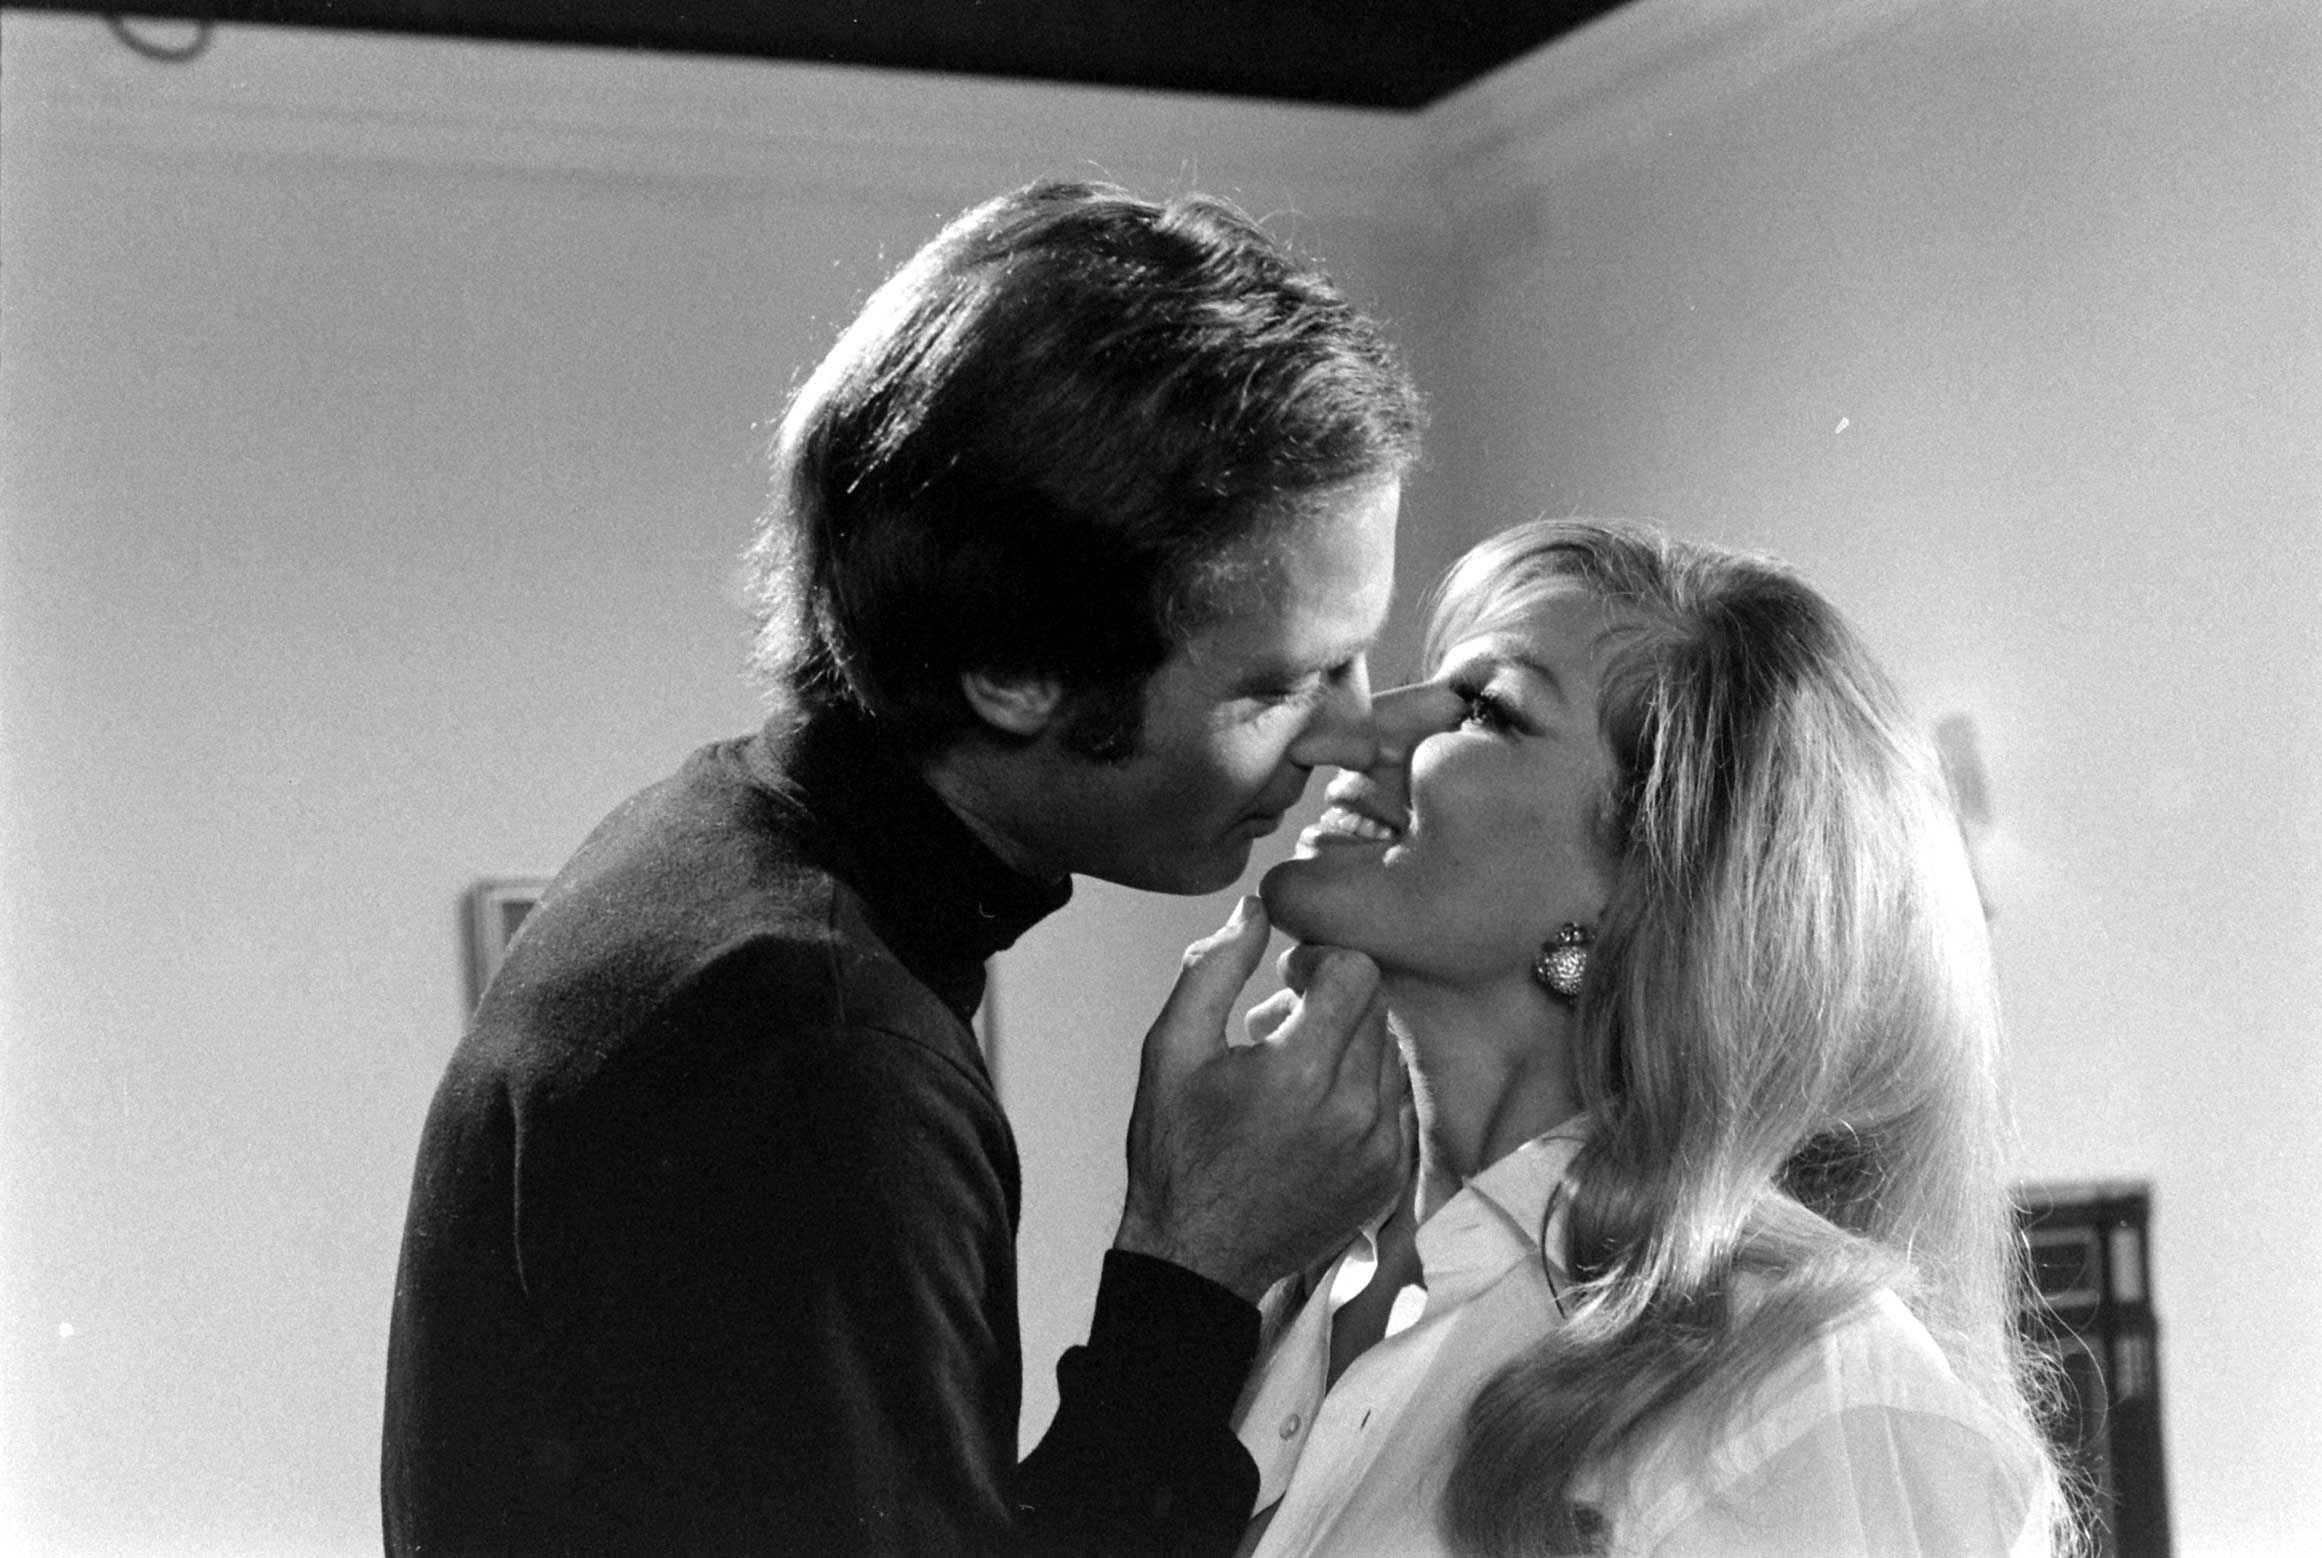 John Richardson continued to act after he lost out on the Bond role, appearing in <i>On a Clear Day You Can See Forever</i> (1970) and a string of Italian movies.